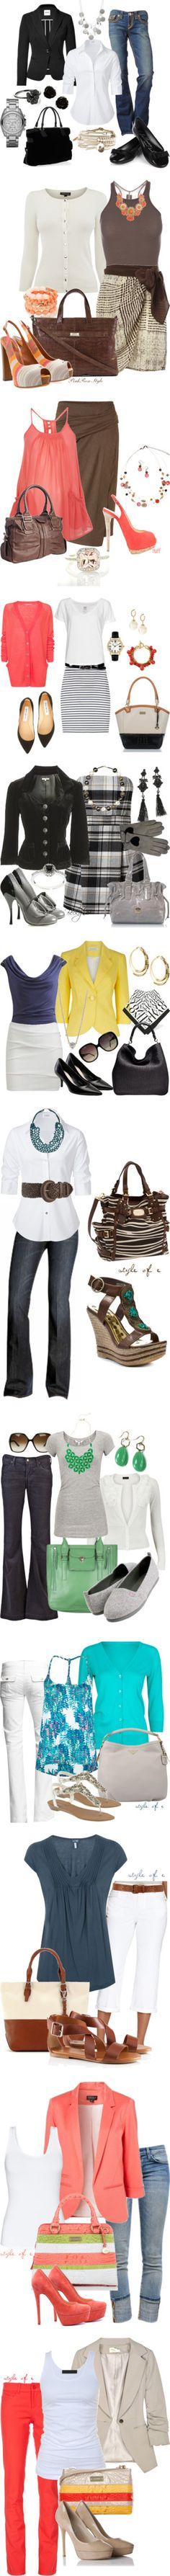 Some great mix & match pieces you can use for a regular or casual day at the office.